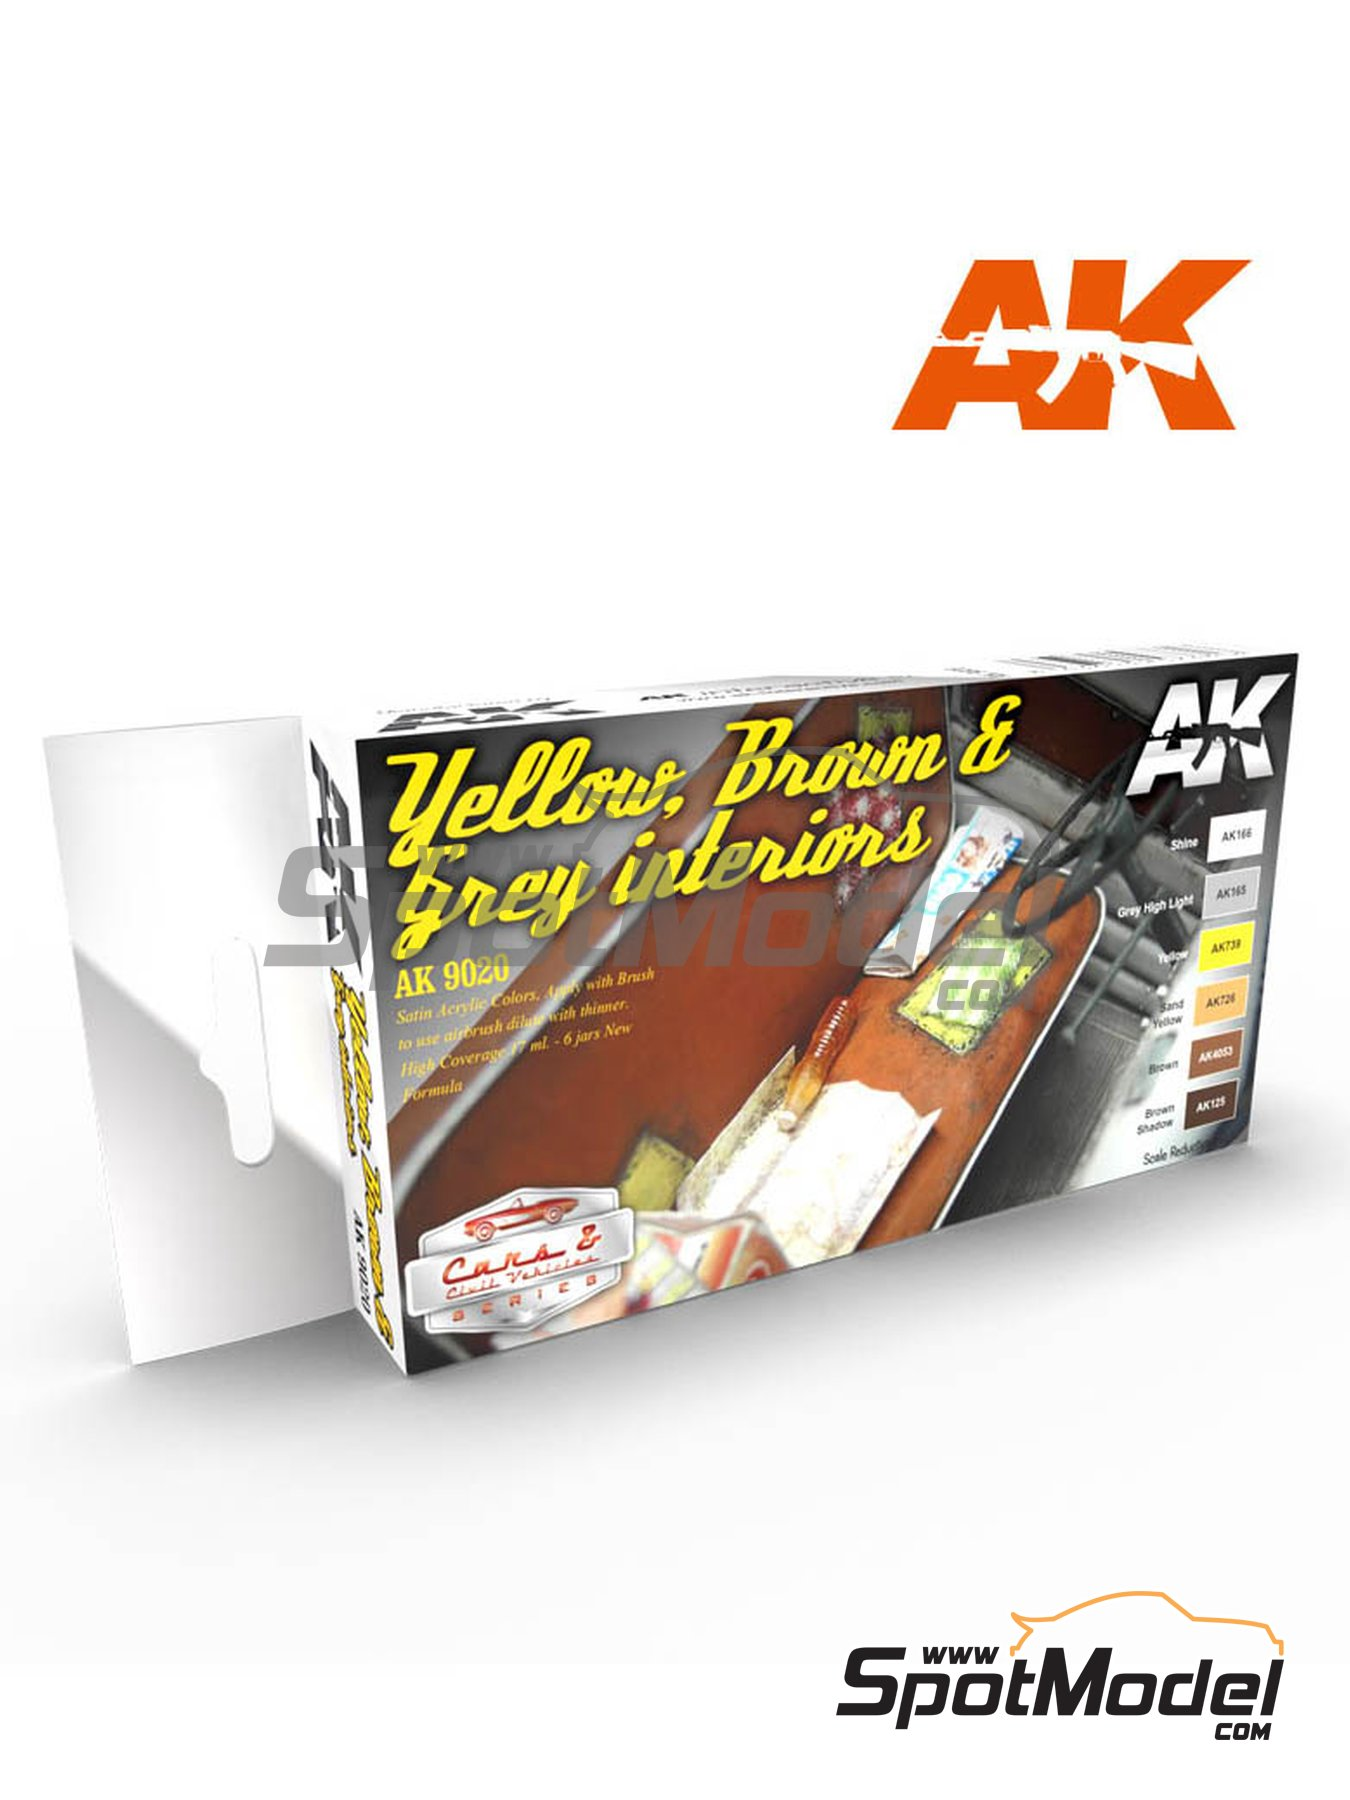 Yellow, brown and grey interiors | Paints set manufactured by AK Interactive (ref.AK9020) image